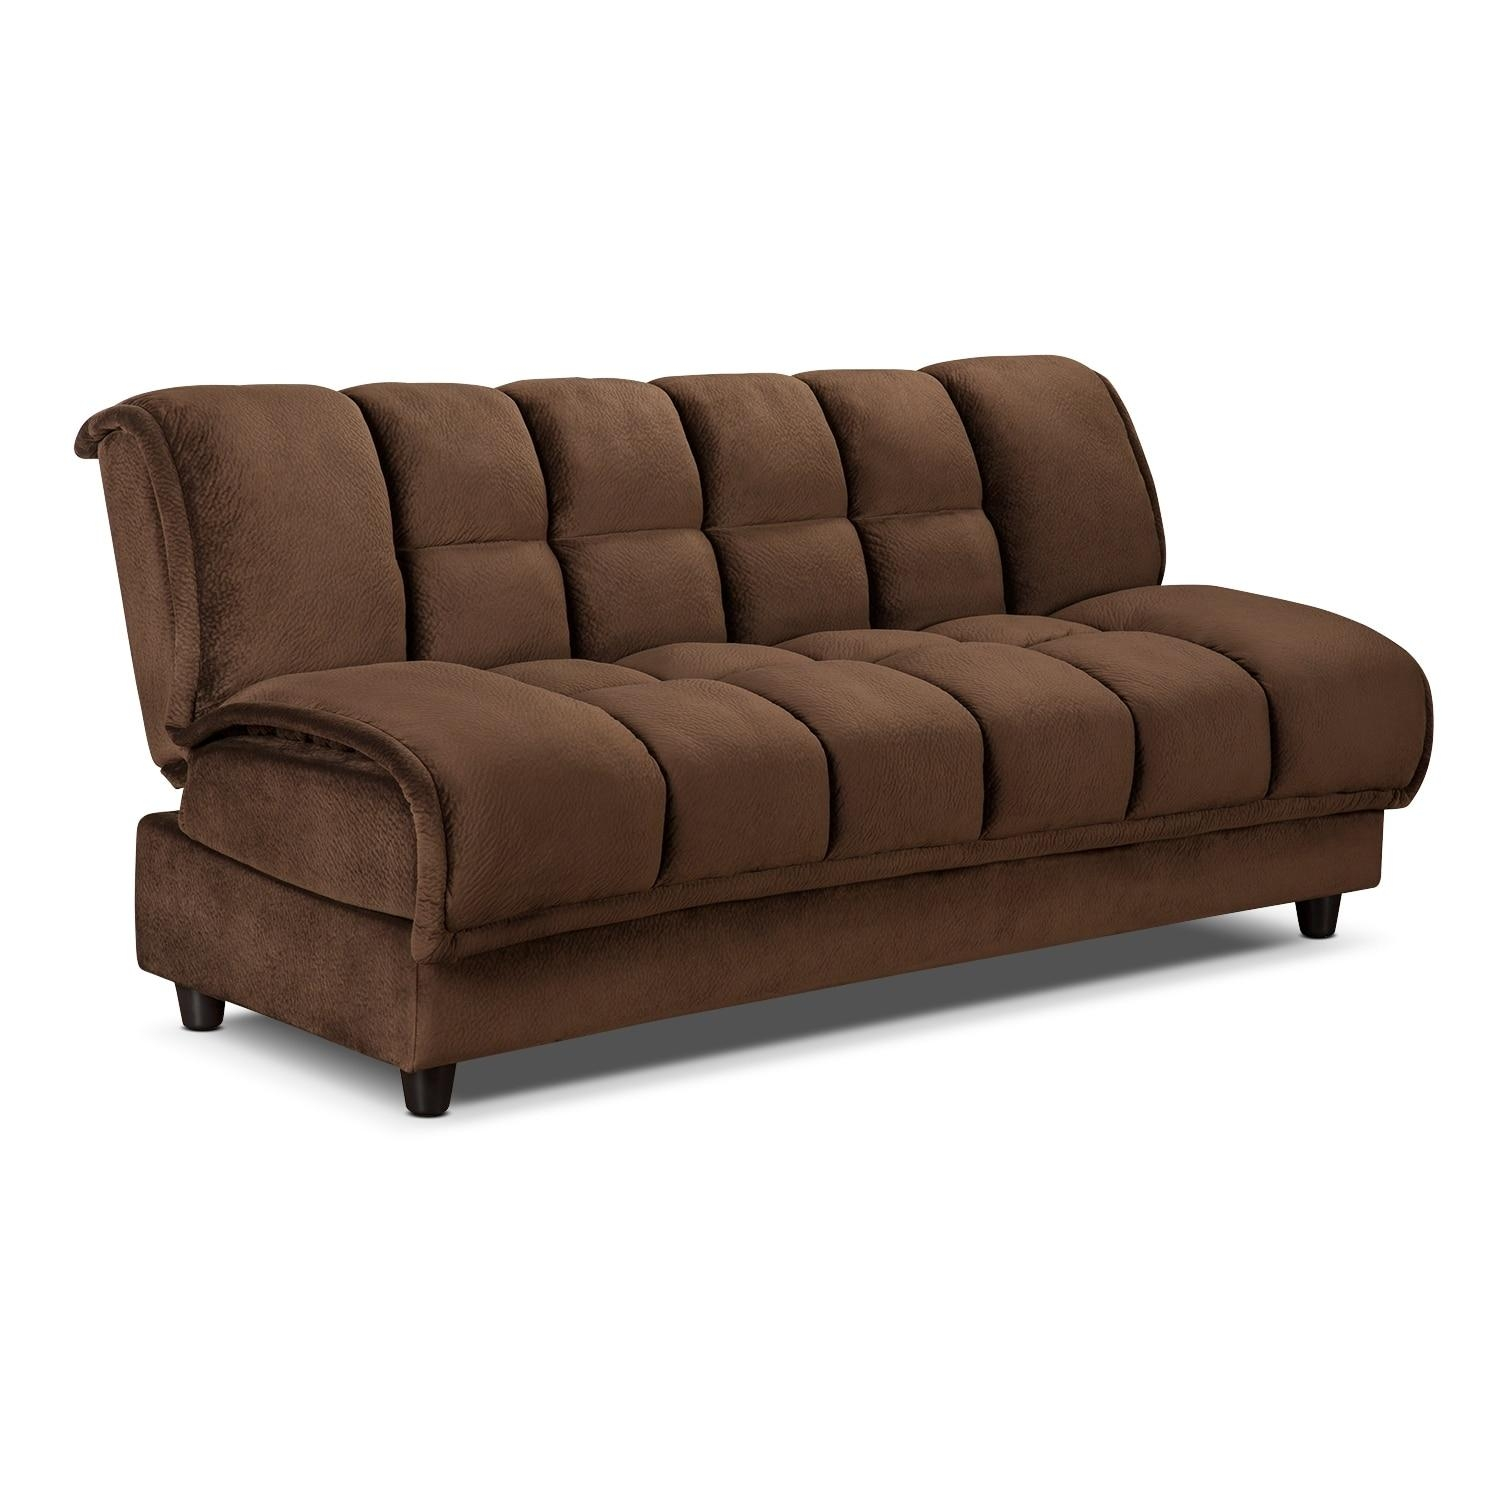 Featured Image of City Sofa Beds